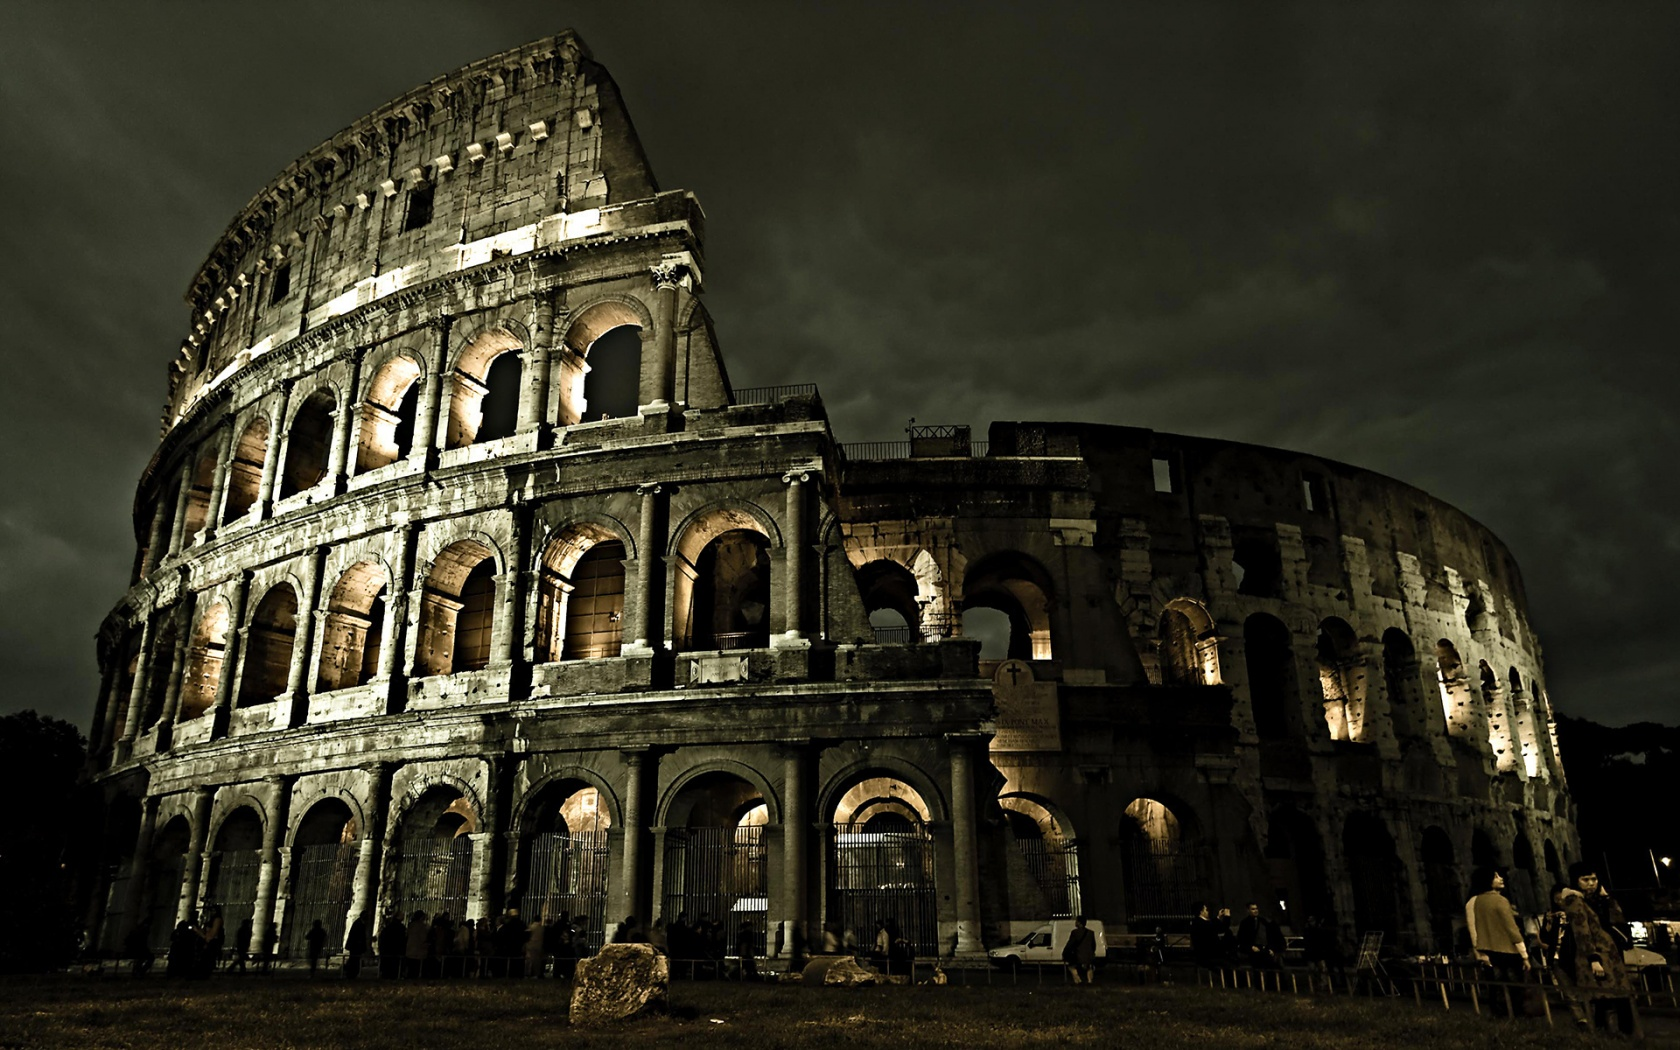 Colosseum Roman Architecture Wallpapers HD Wallpapers 1680x1050